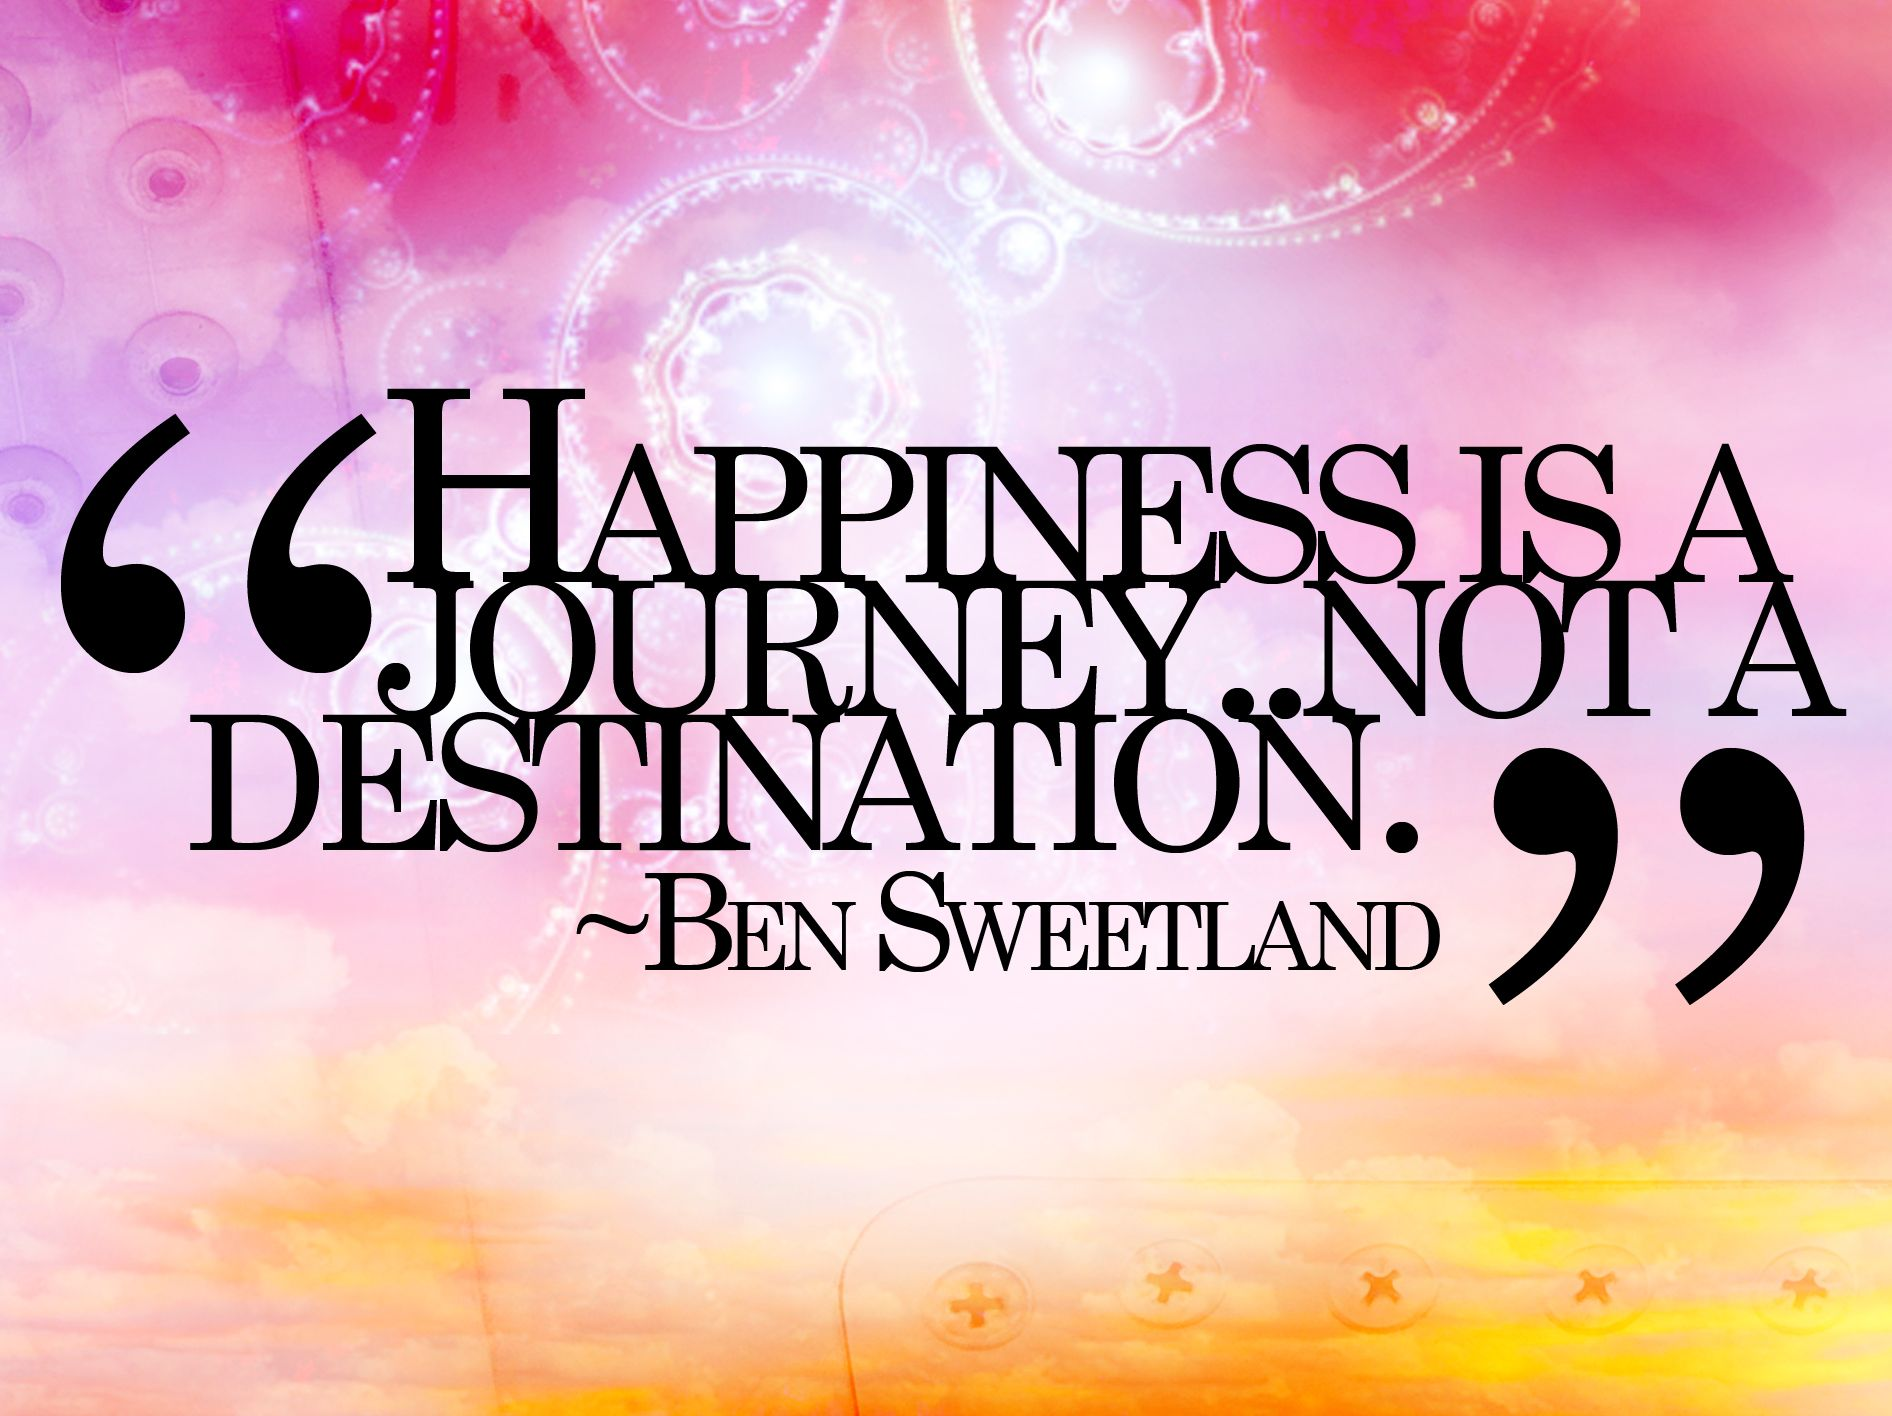 Quotes About Happiness Image 33